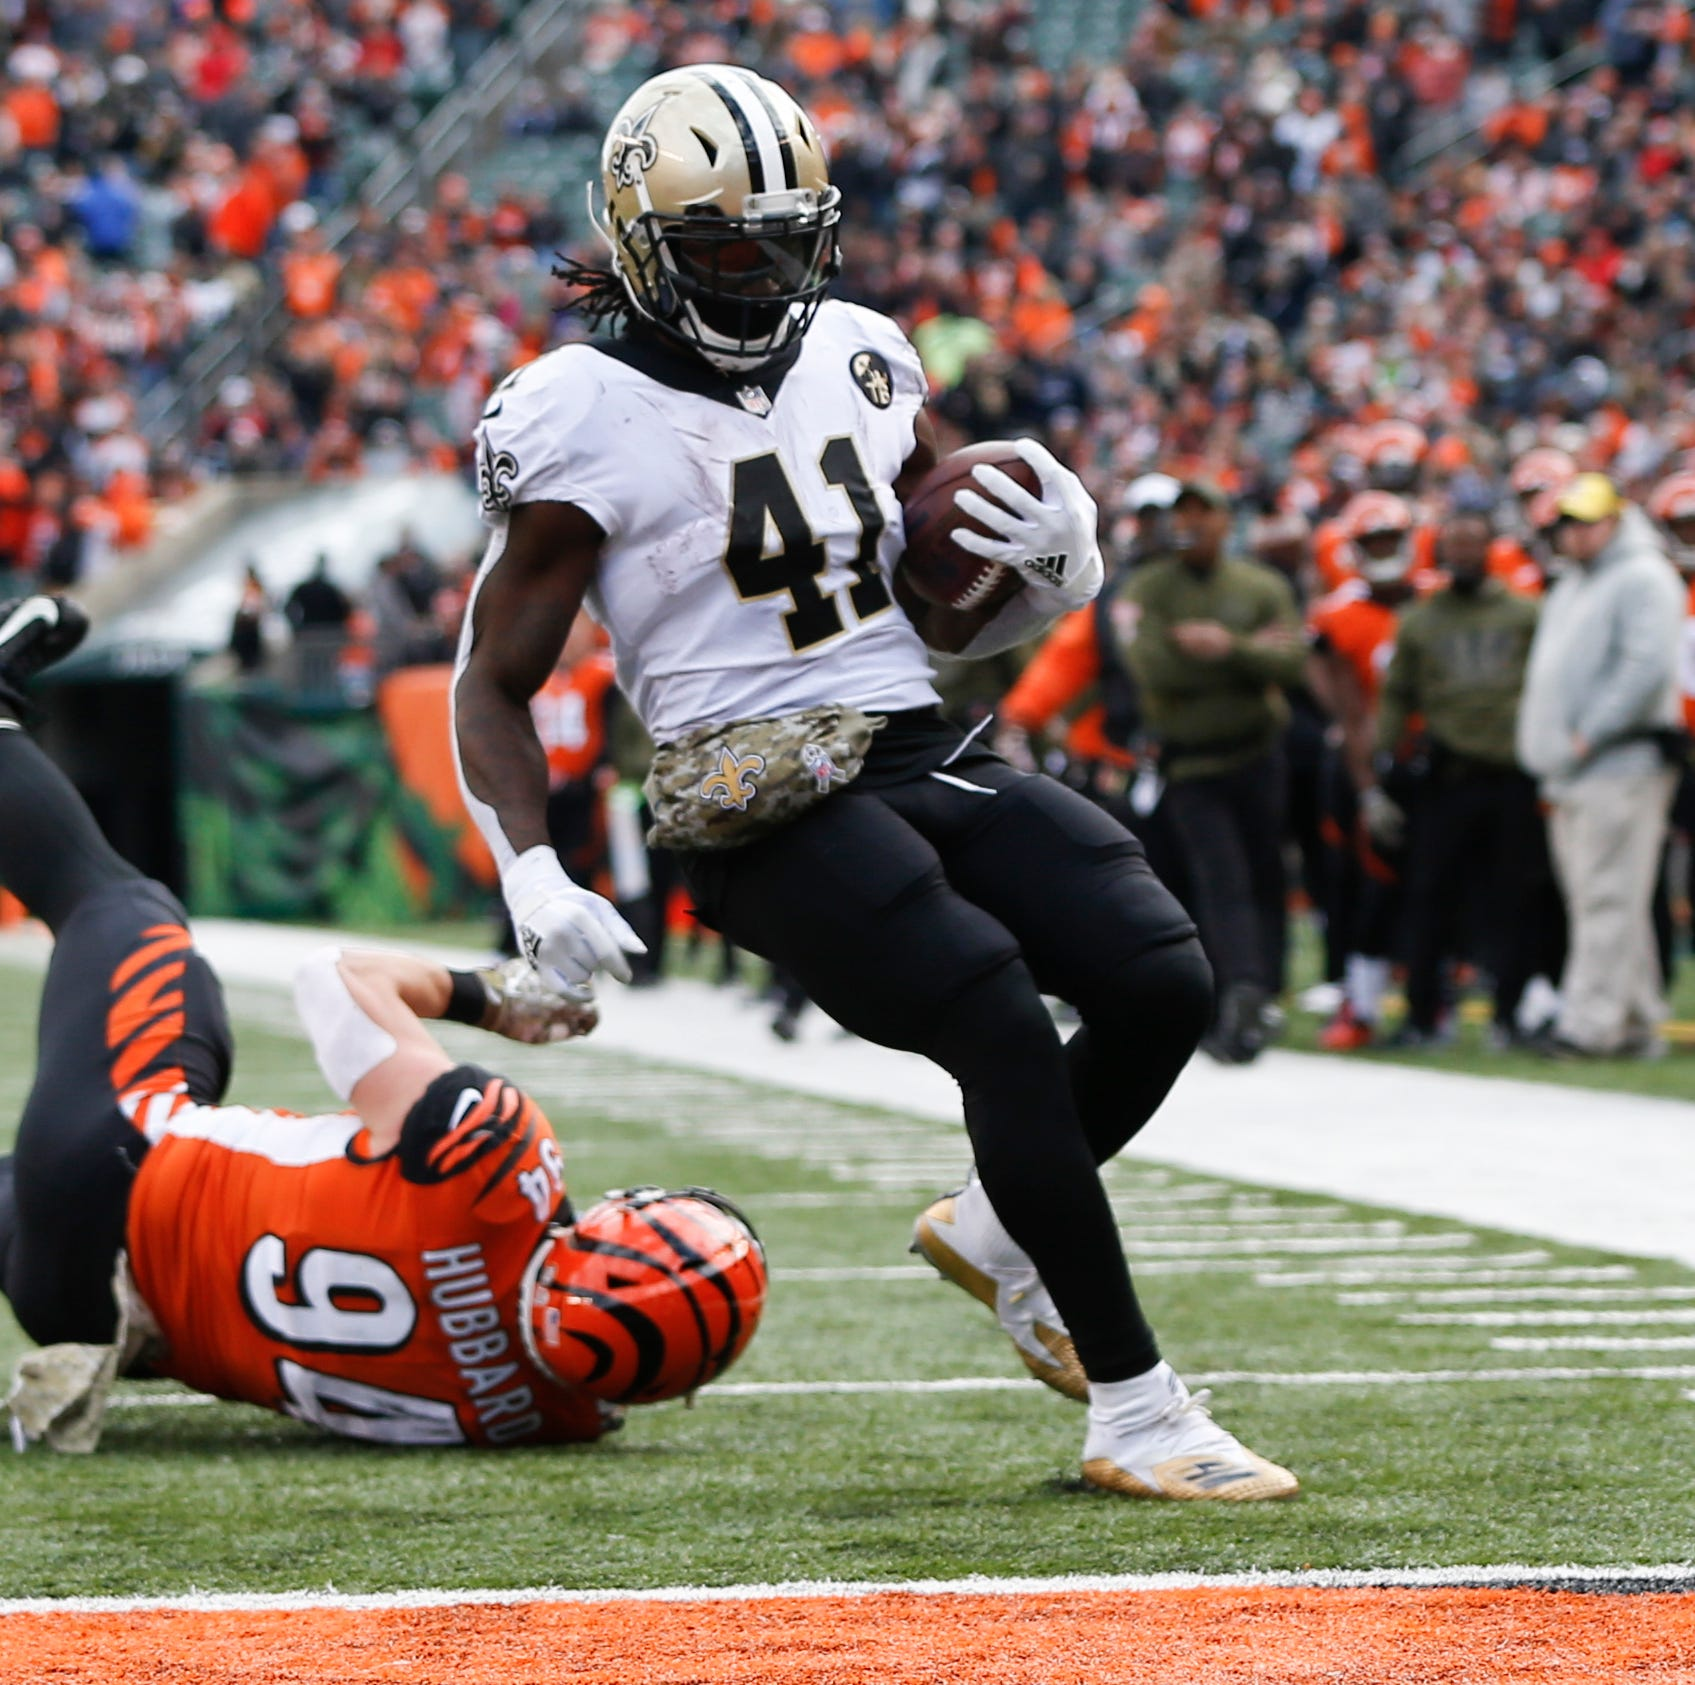 Brees passes Favre with 3 TDs, Saints  crush Bengals 51-14